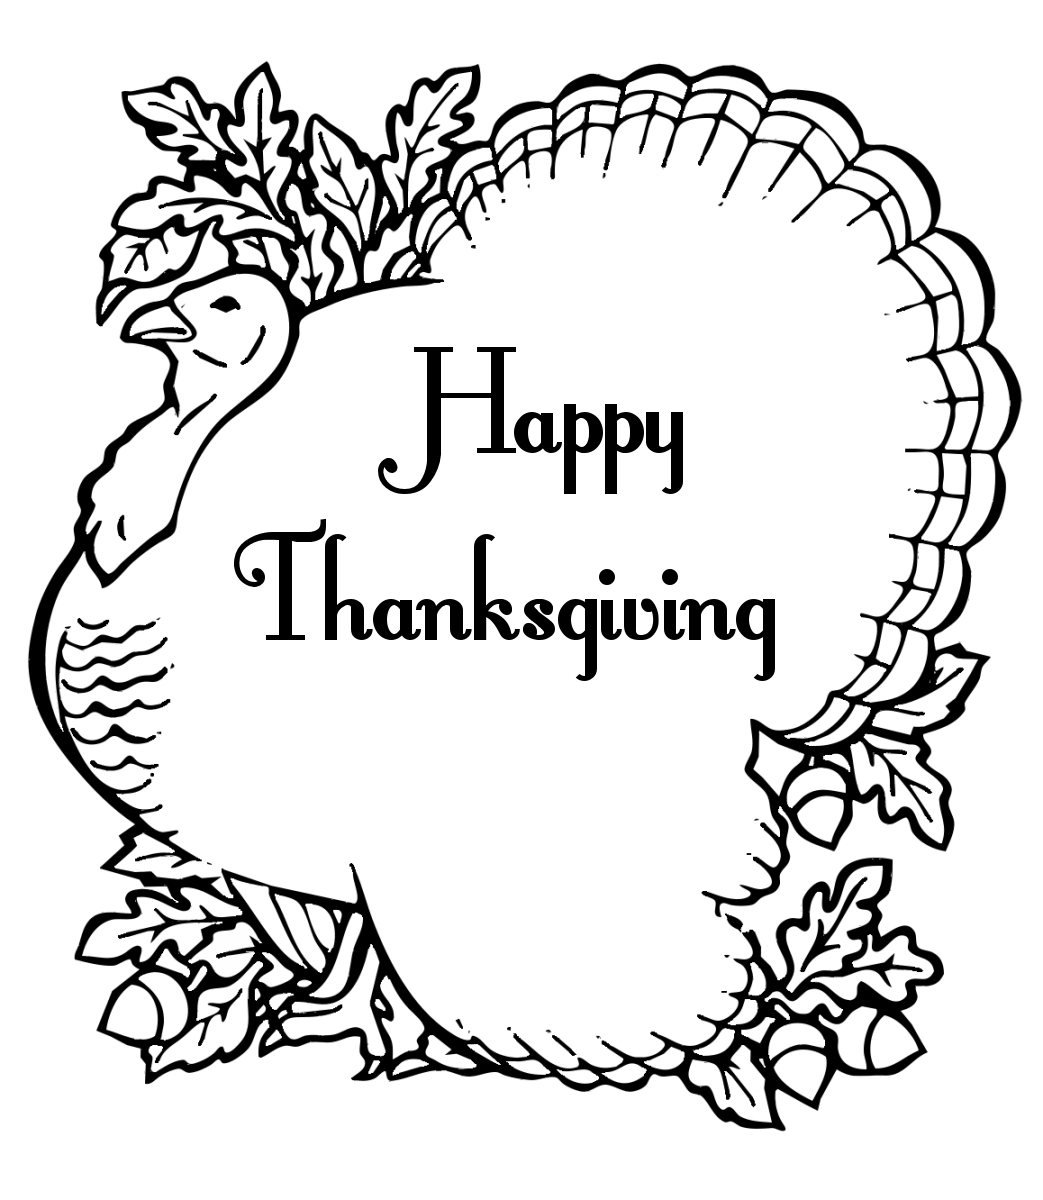 Thanksgiving clipart black and white Best of Free Black And White.